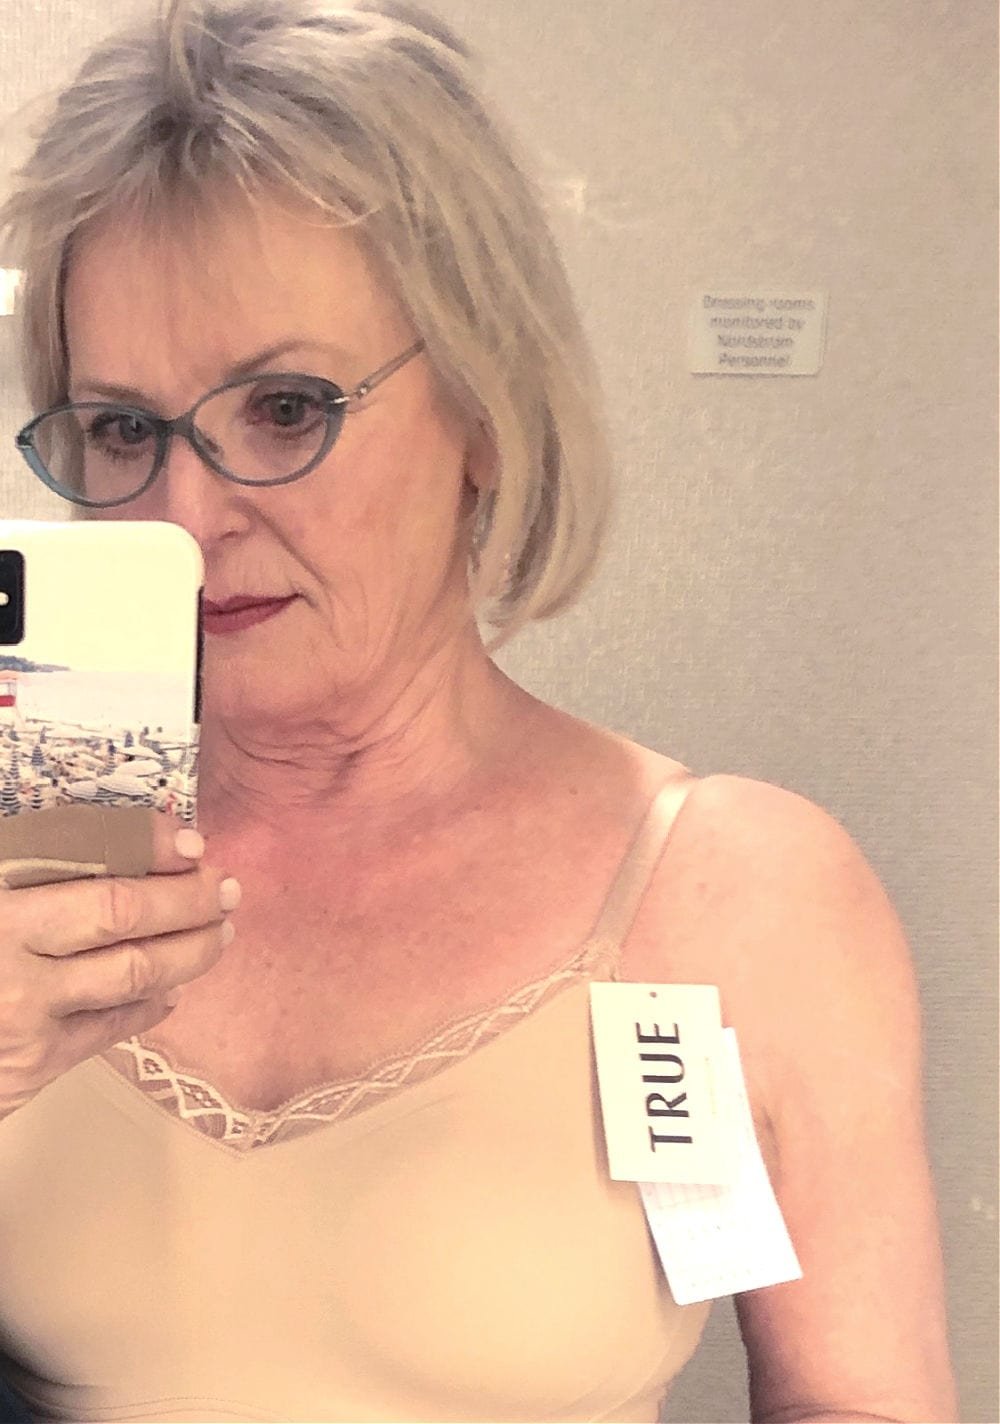 over 50 fashion blogger jennifer connolly of a well styled life wearing True wireless bra in Nordstrom dressing room